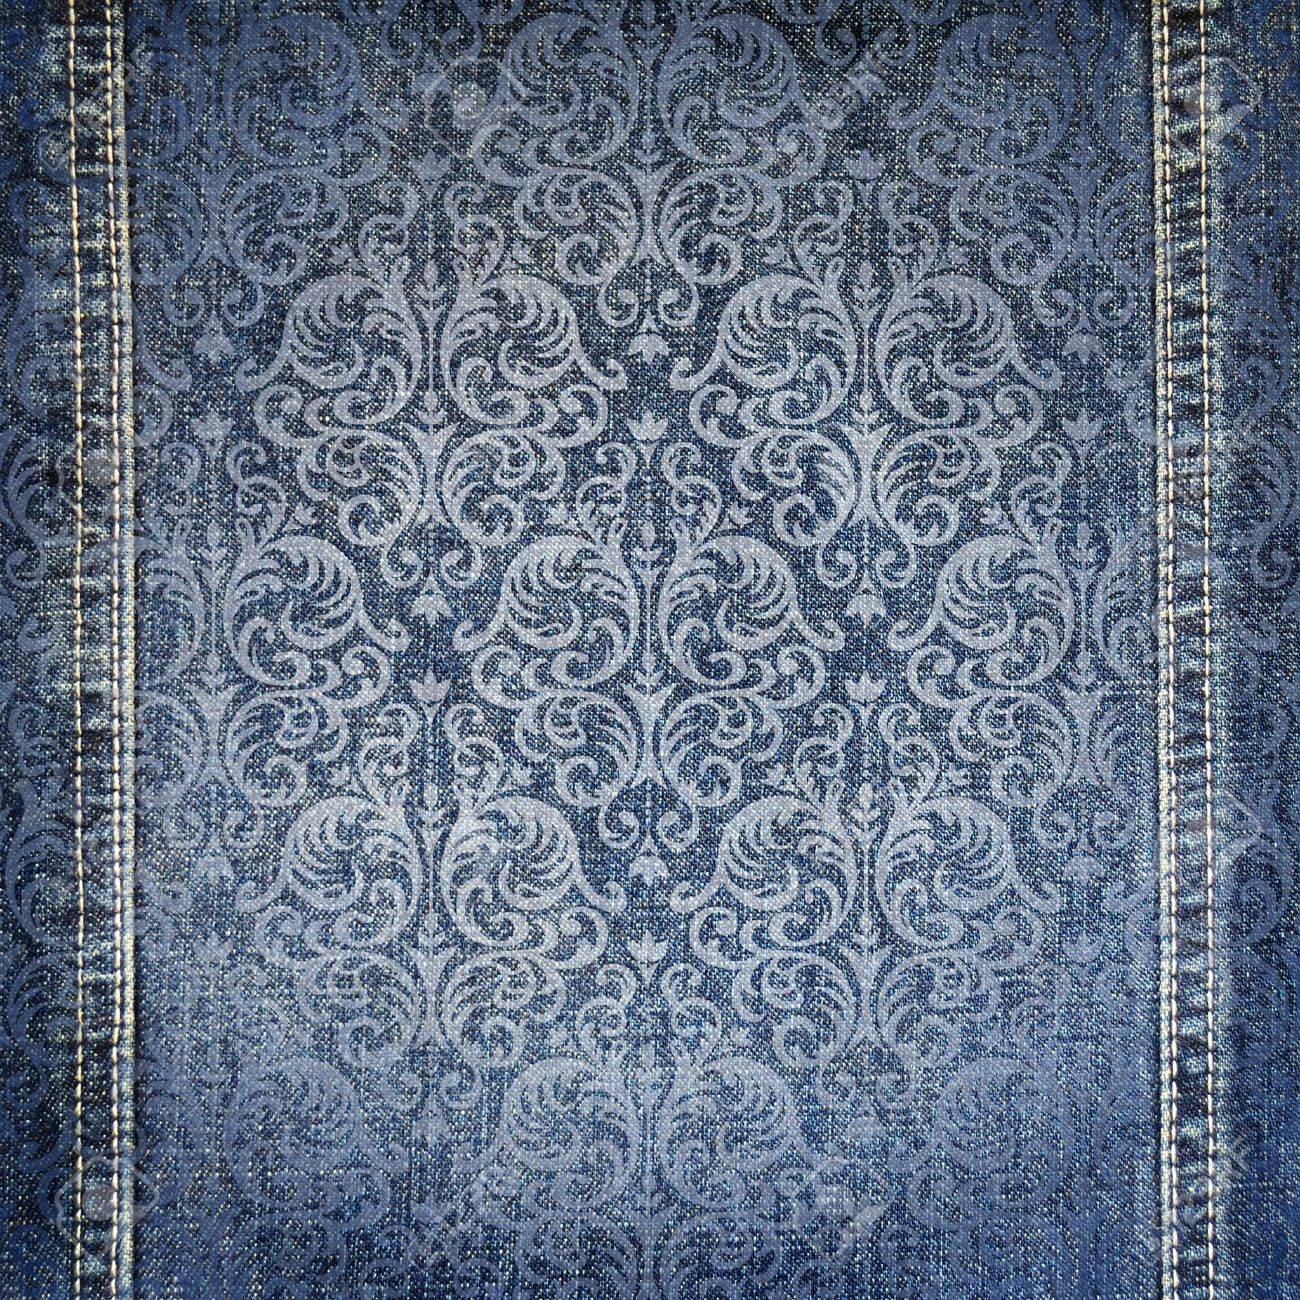 Abstract jeans backround - 14835567